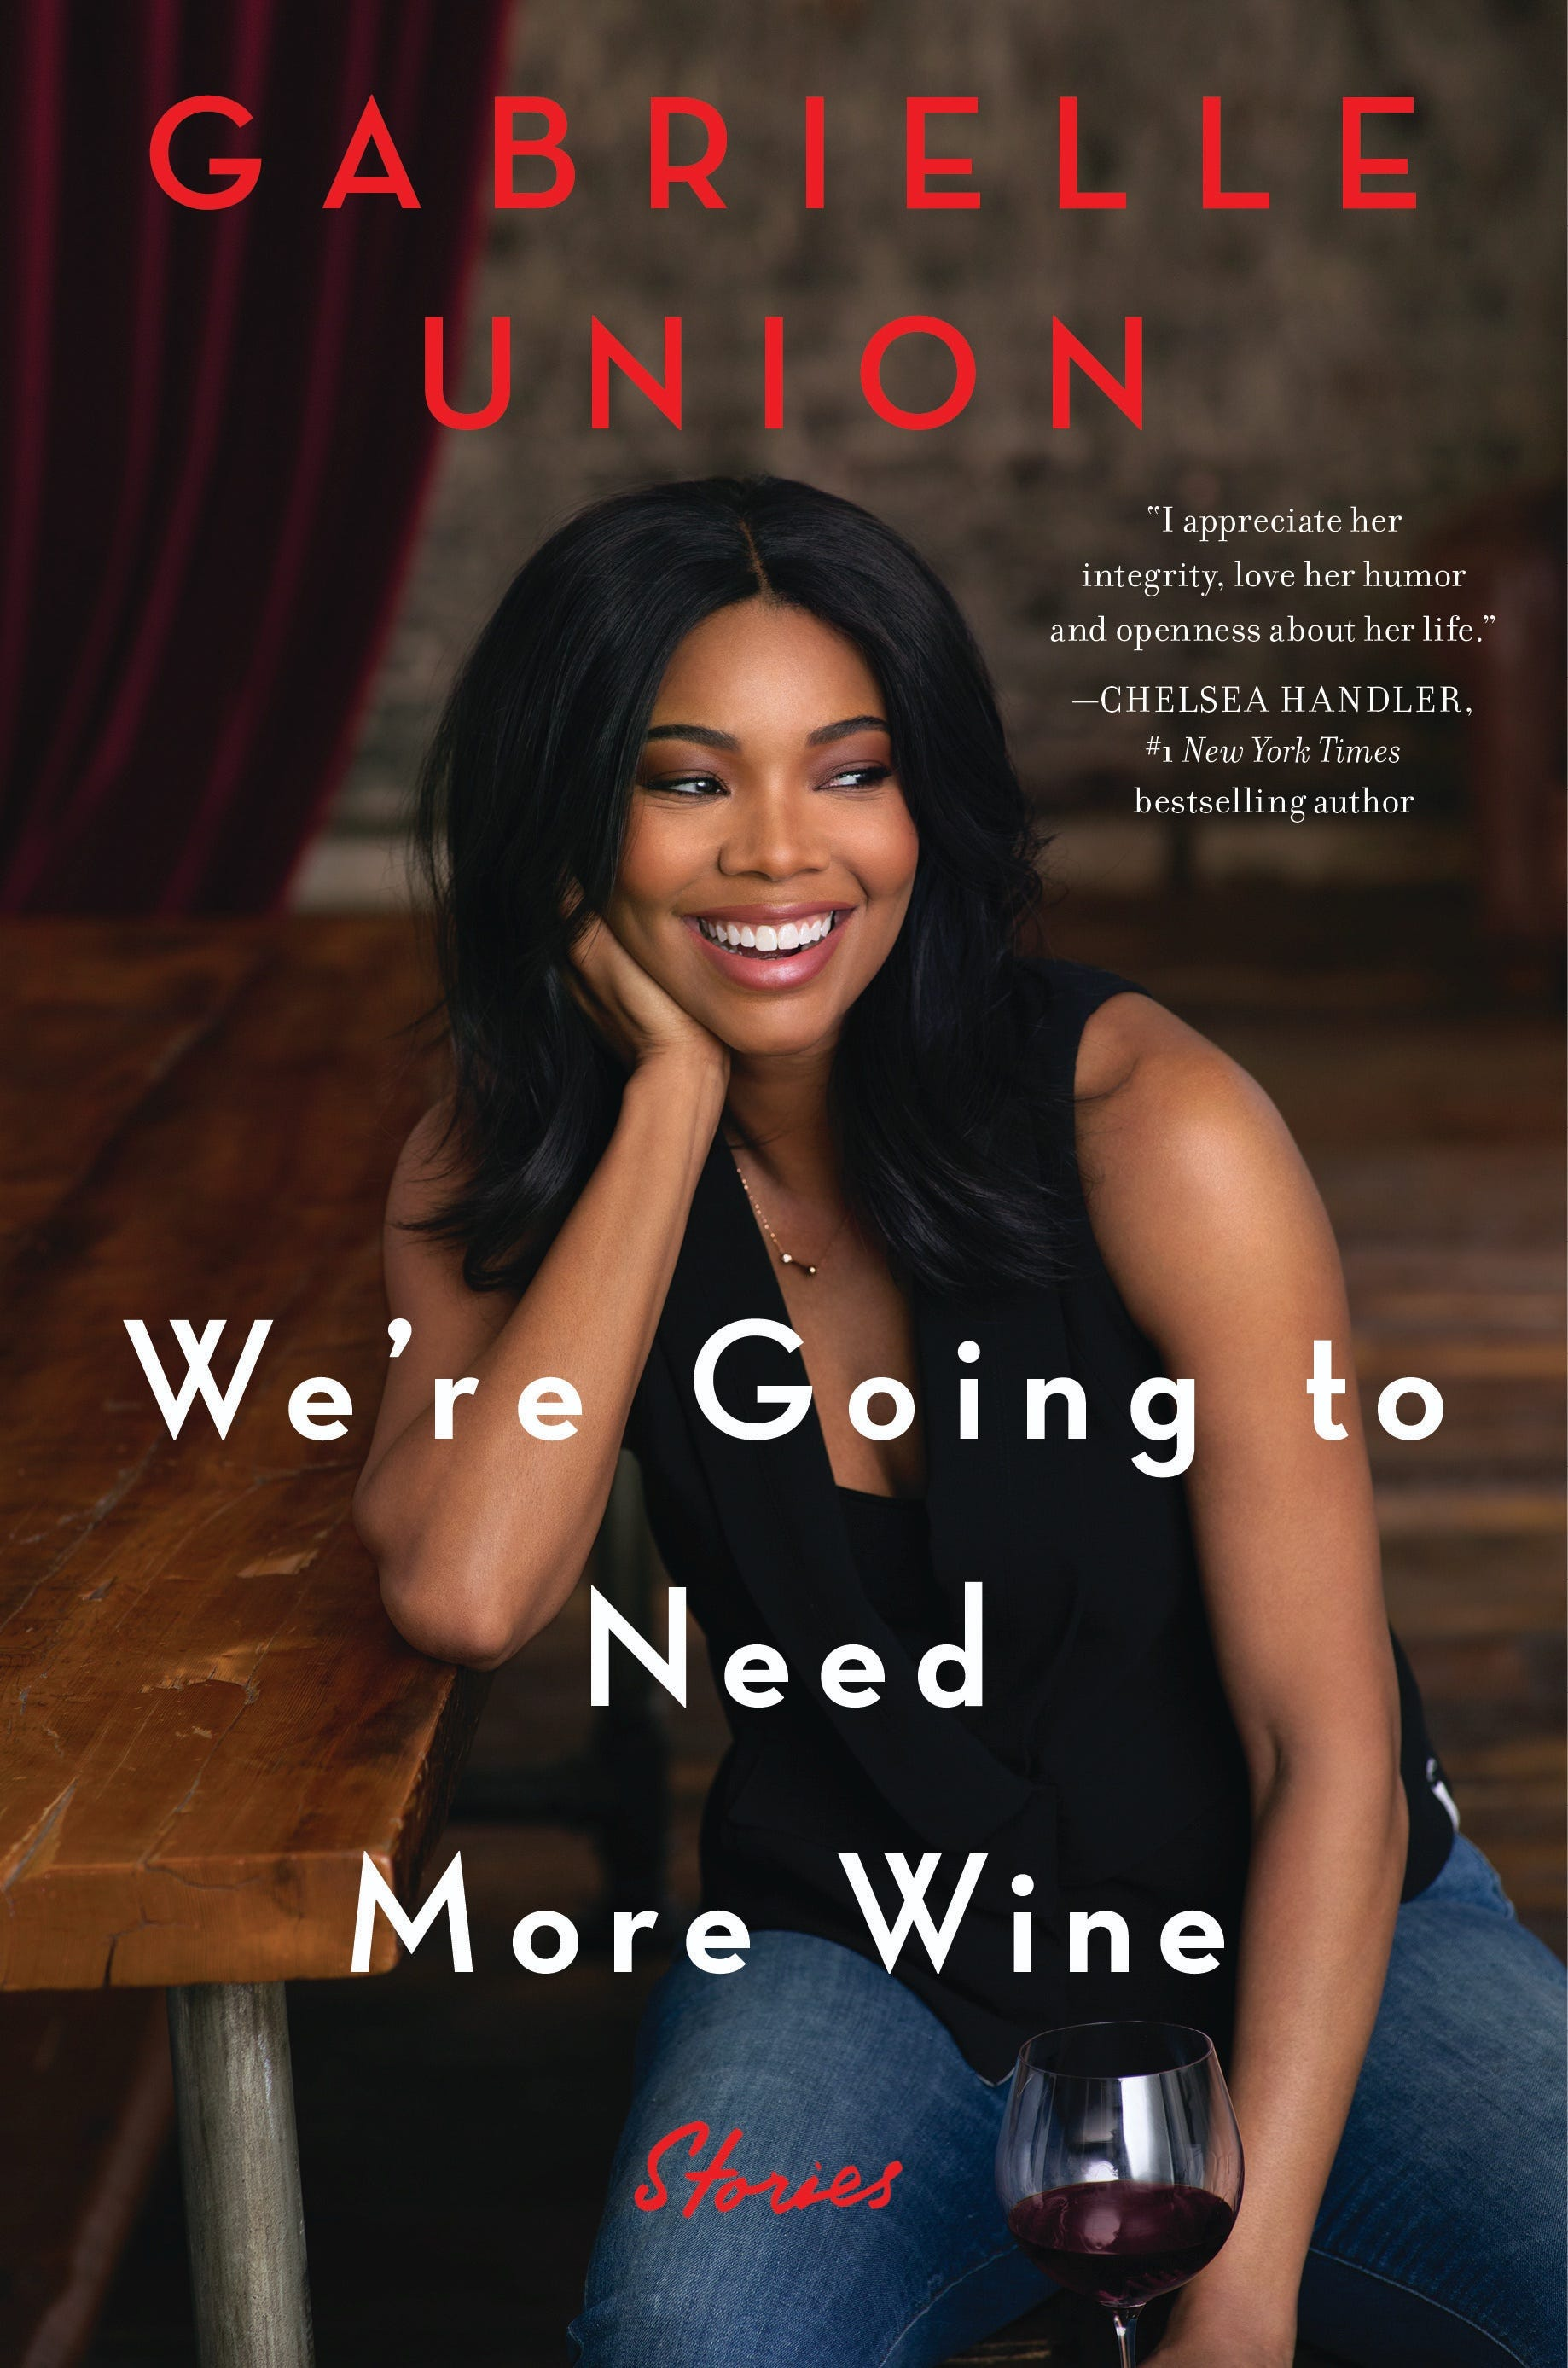 Gabrielle Union gets real about rape relationships in her new